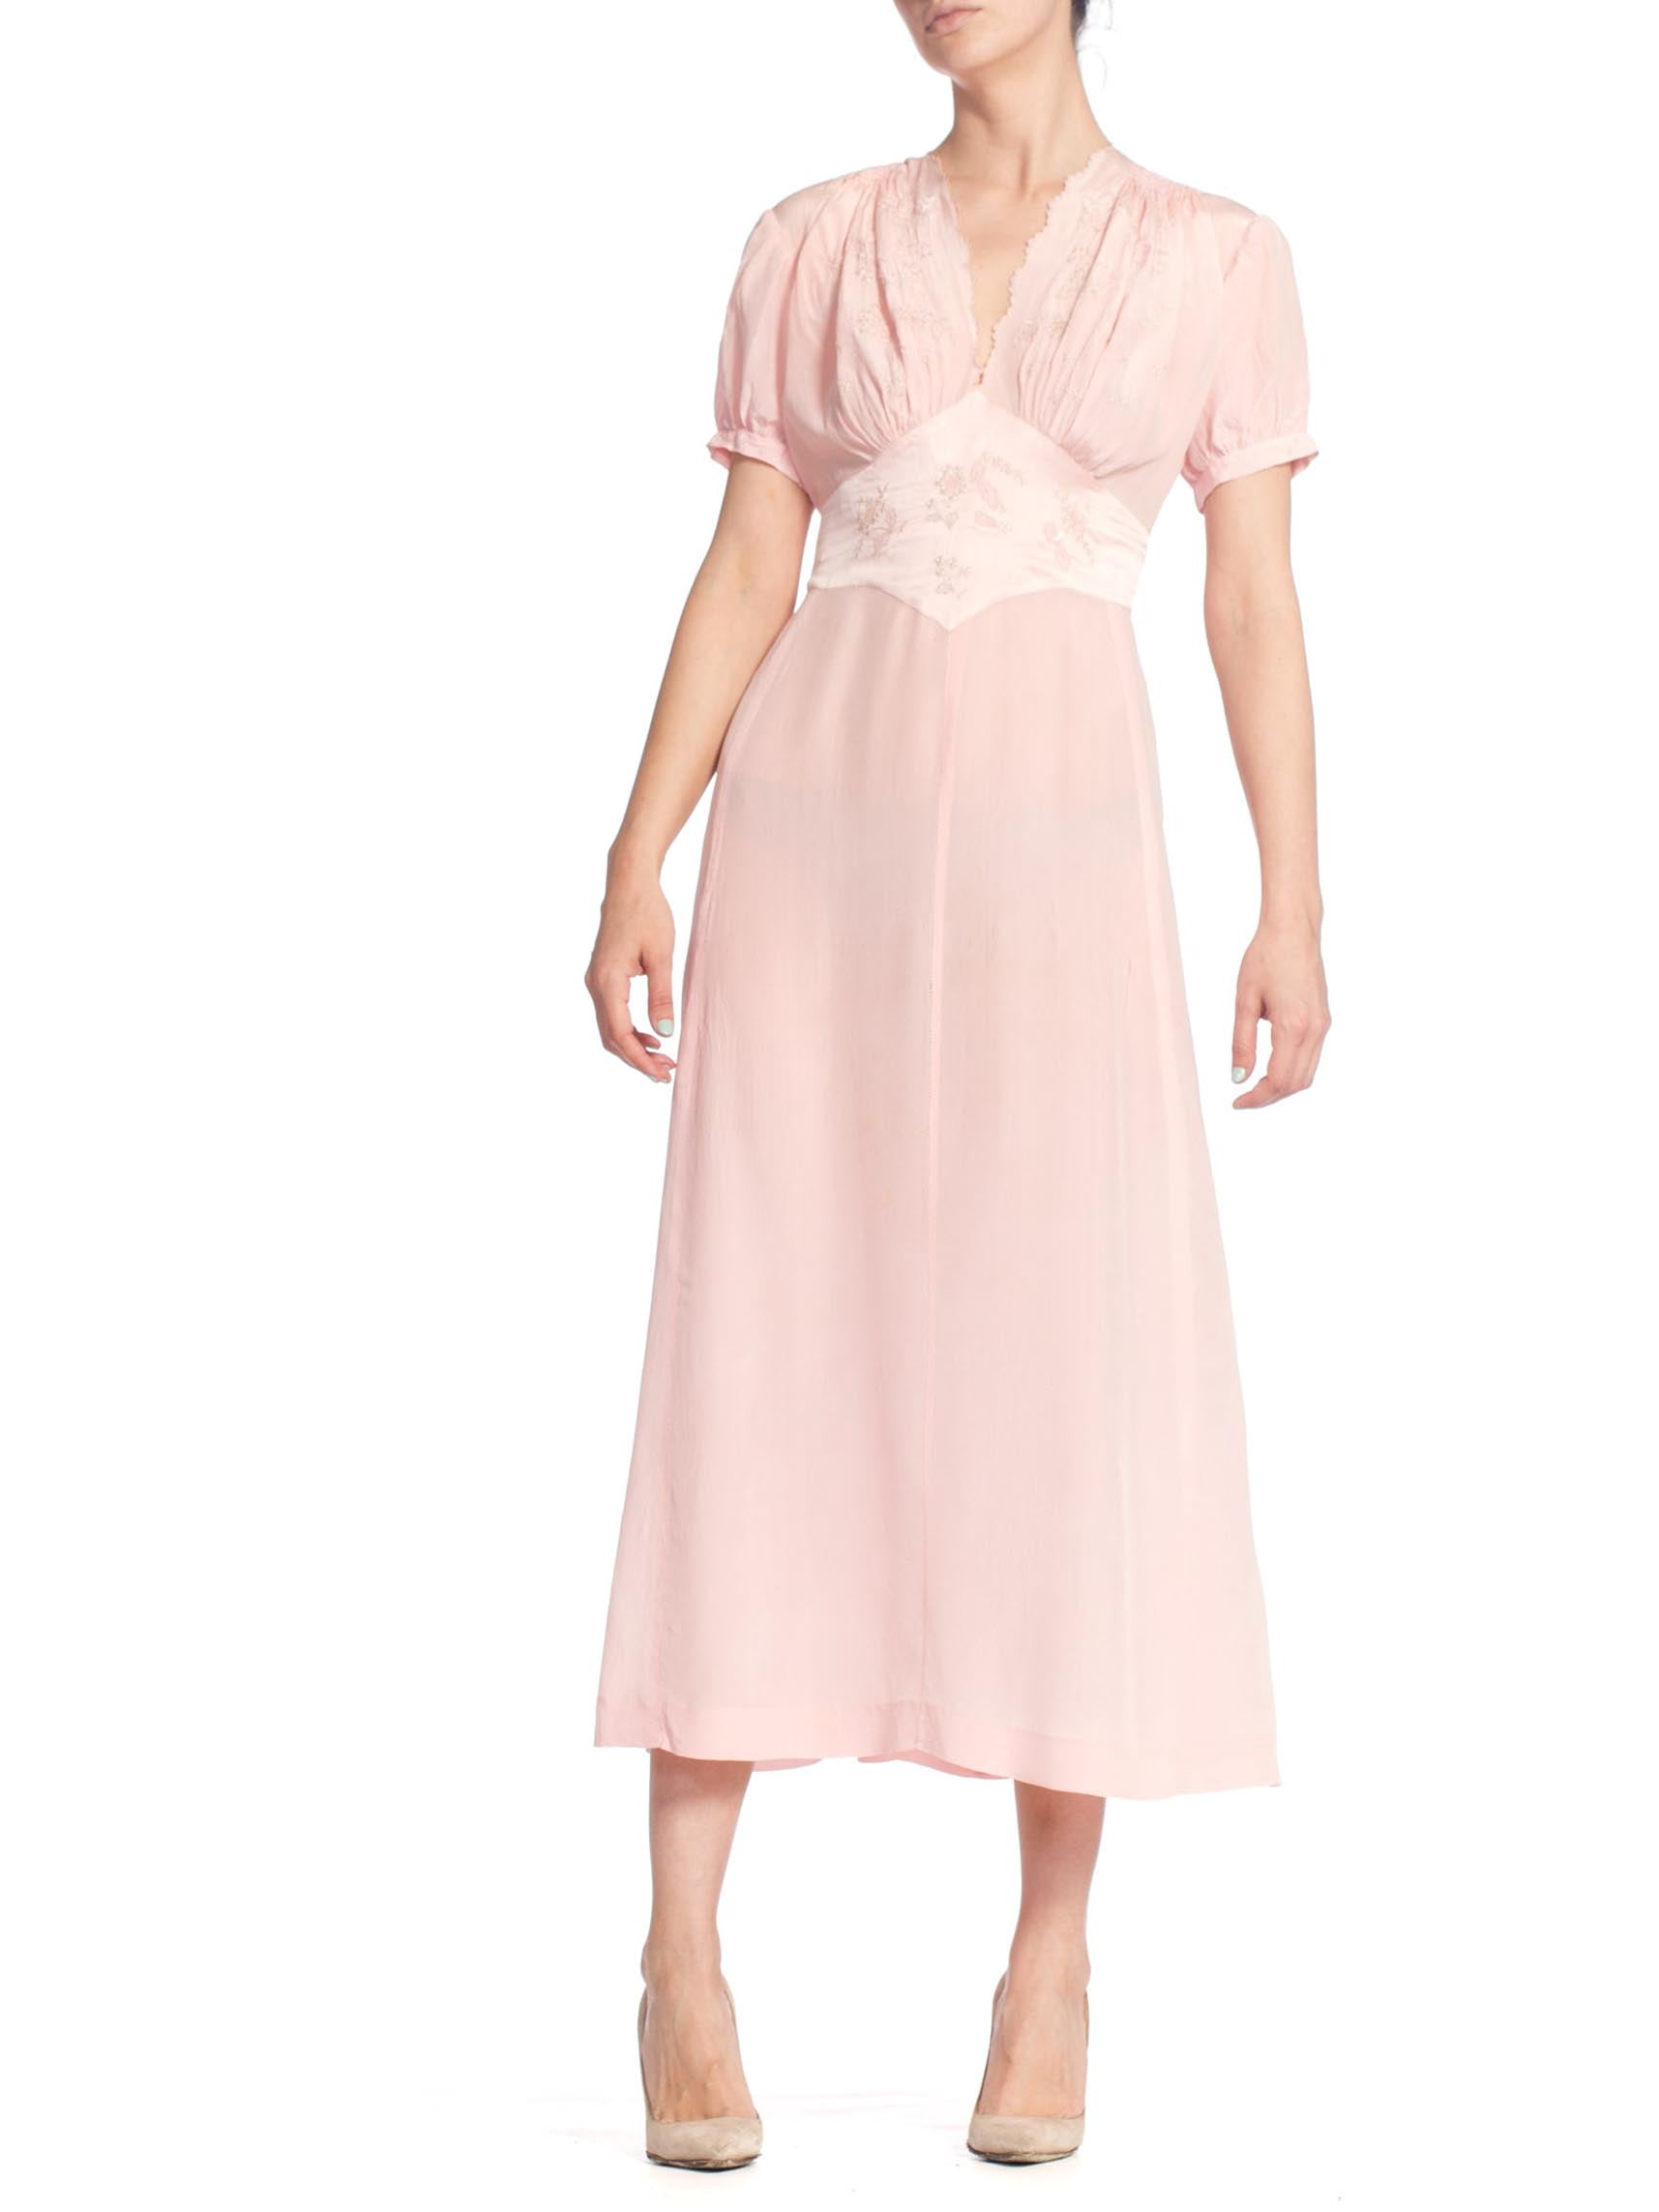 1940S Baby Pink Silk Hand Embroidered Negligee Slip Dress With Adjustable Waist Ties